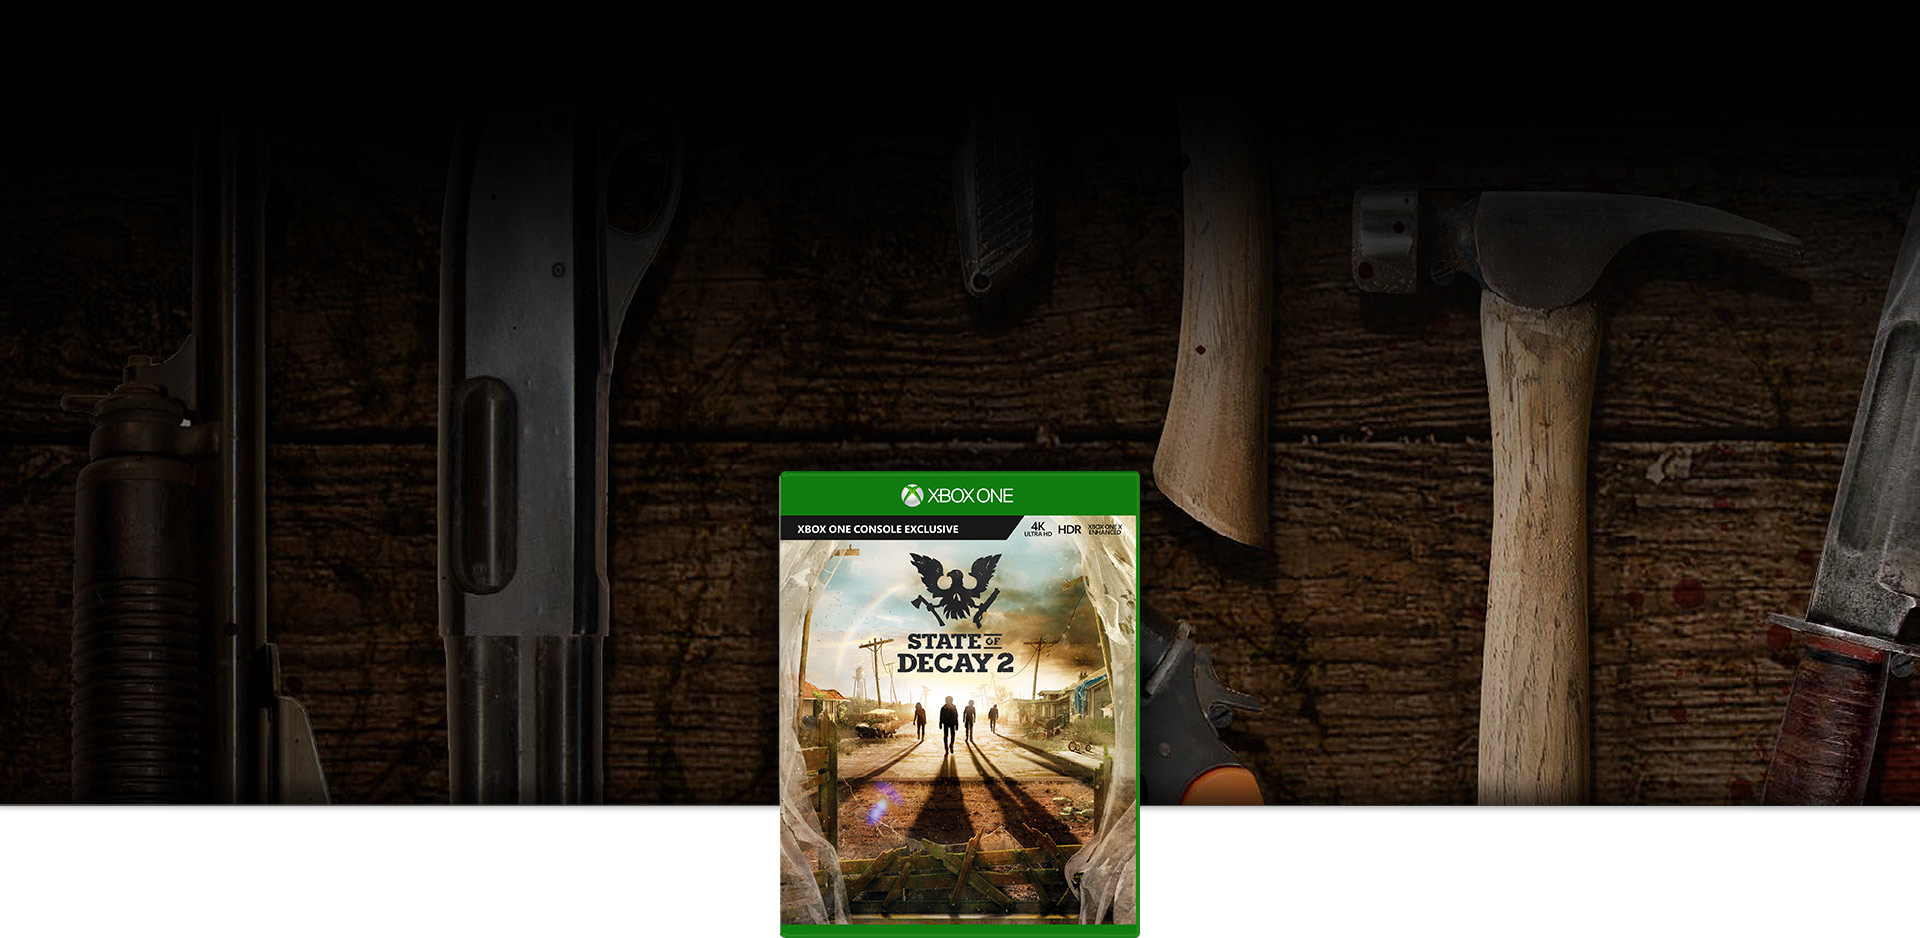 State of Decay 2 Boxshot with tools to use against zombies in the background